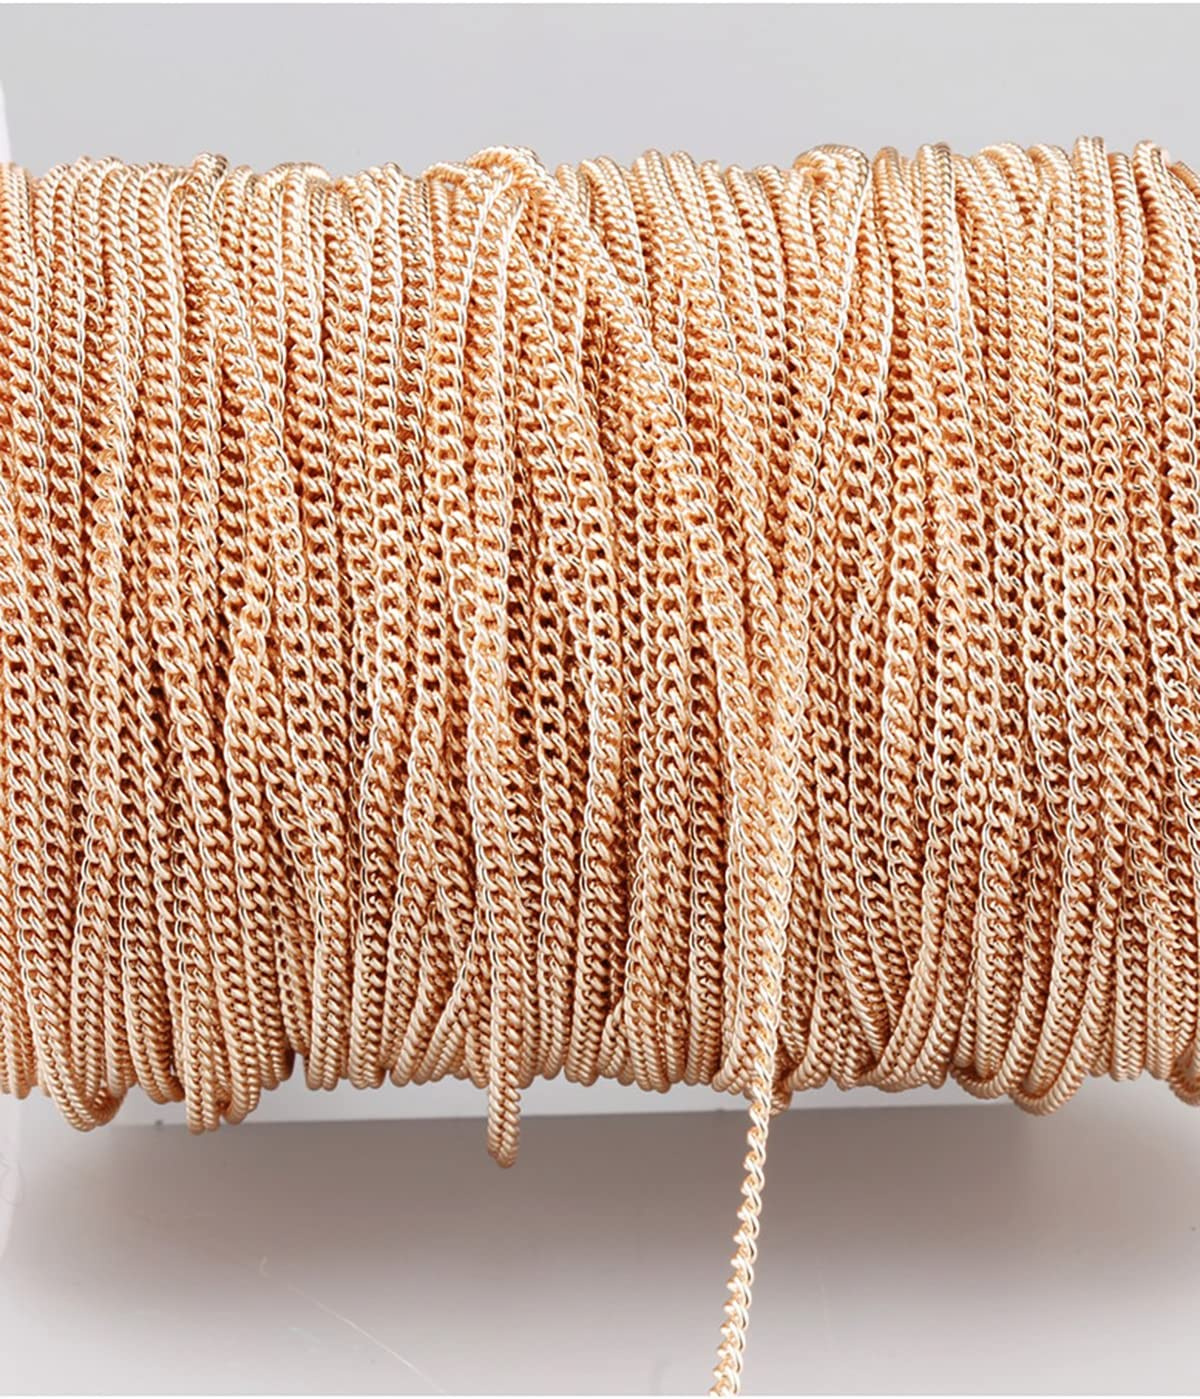 3 x 4mm Cross Chain 32.8ft Do not Fade Rose Gold Plated Twisted Chains Metal Cable Chain Link Jewelry Making Chain for DIY Making Bracelet Necklace